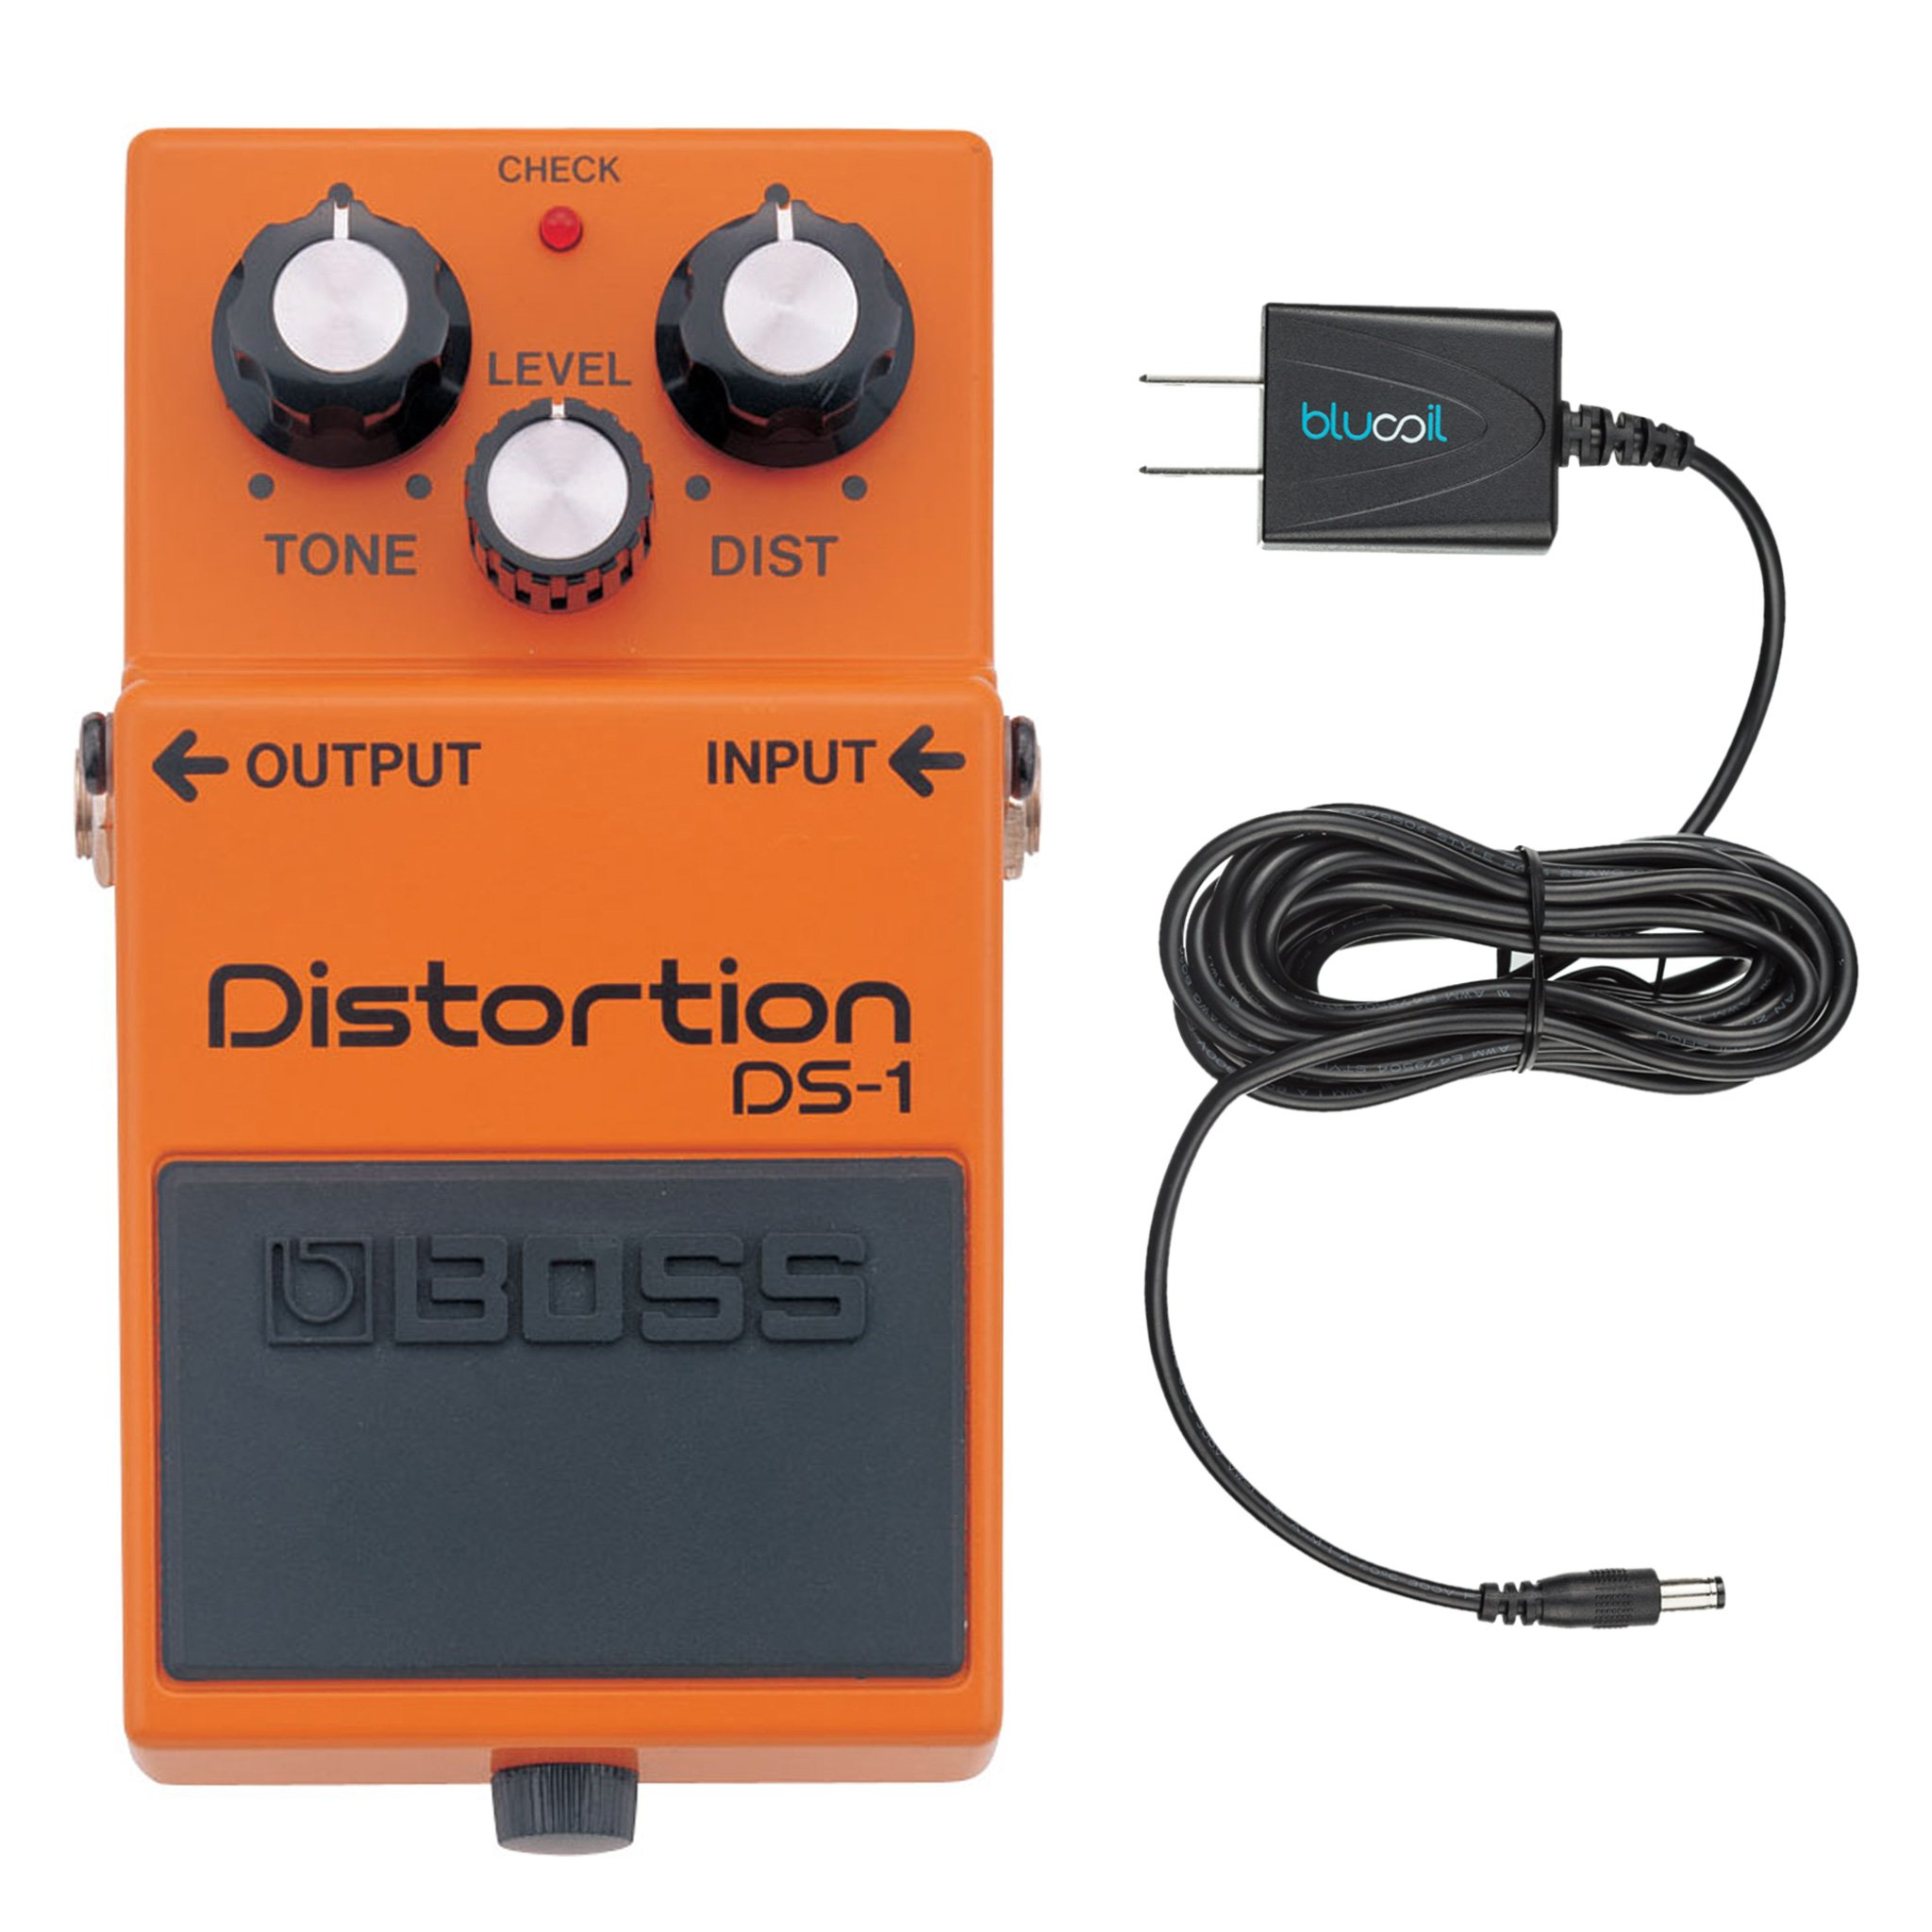 Boss DS-1 Distortion Guitar Effects Pedal – INCLUDES – Blucoil Power Supply Slim AC/DC Adapter for 9 Volt DC 670mA